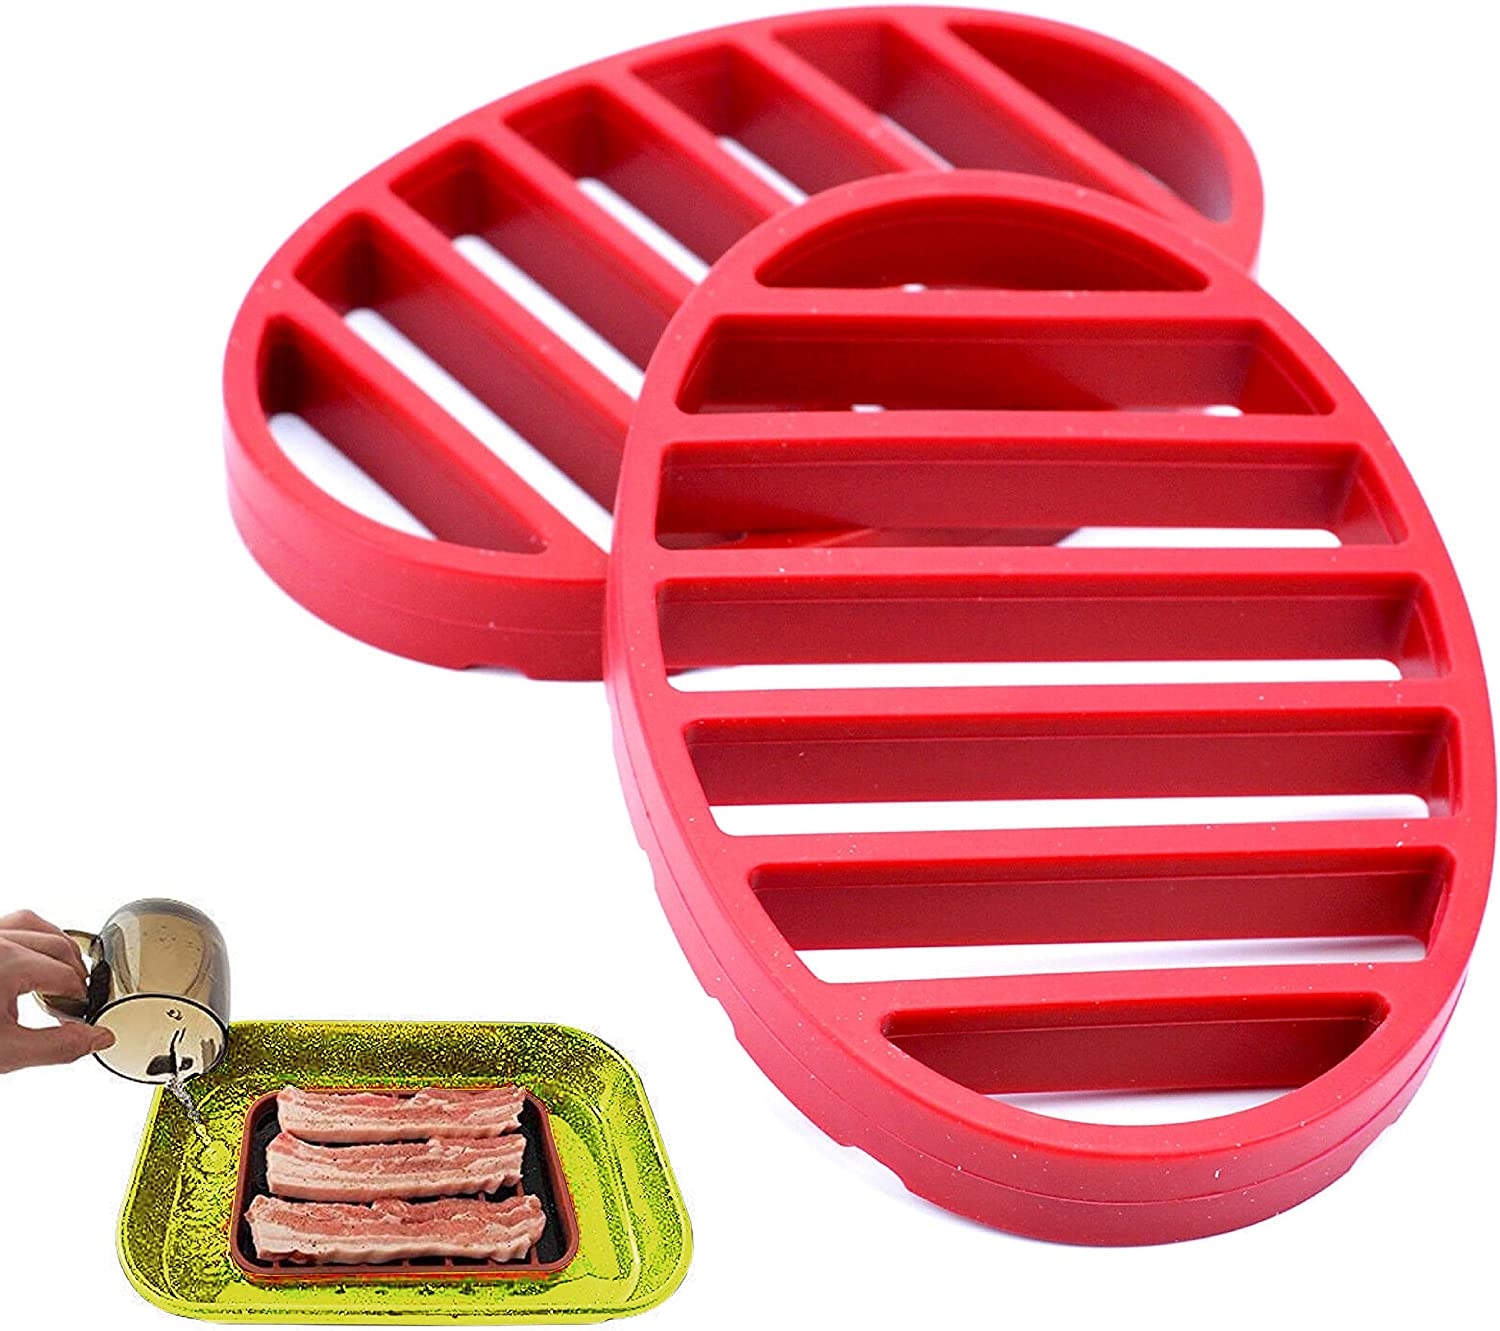 Professional Oval Silicone Roast Rack made of Food-Grade Silicone Roasting Rack, Nonstick Silicone Rack for Health food cooking, Pressure Cooker, Meat Roasting Rack Set of 2 pack